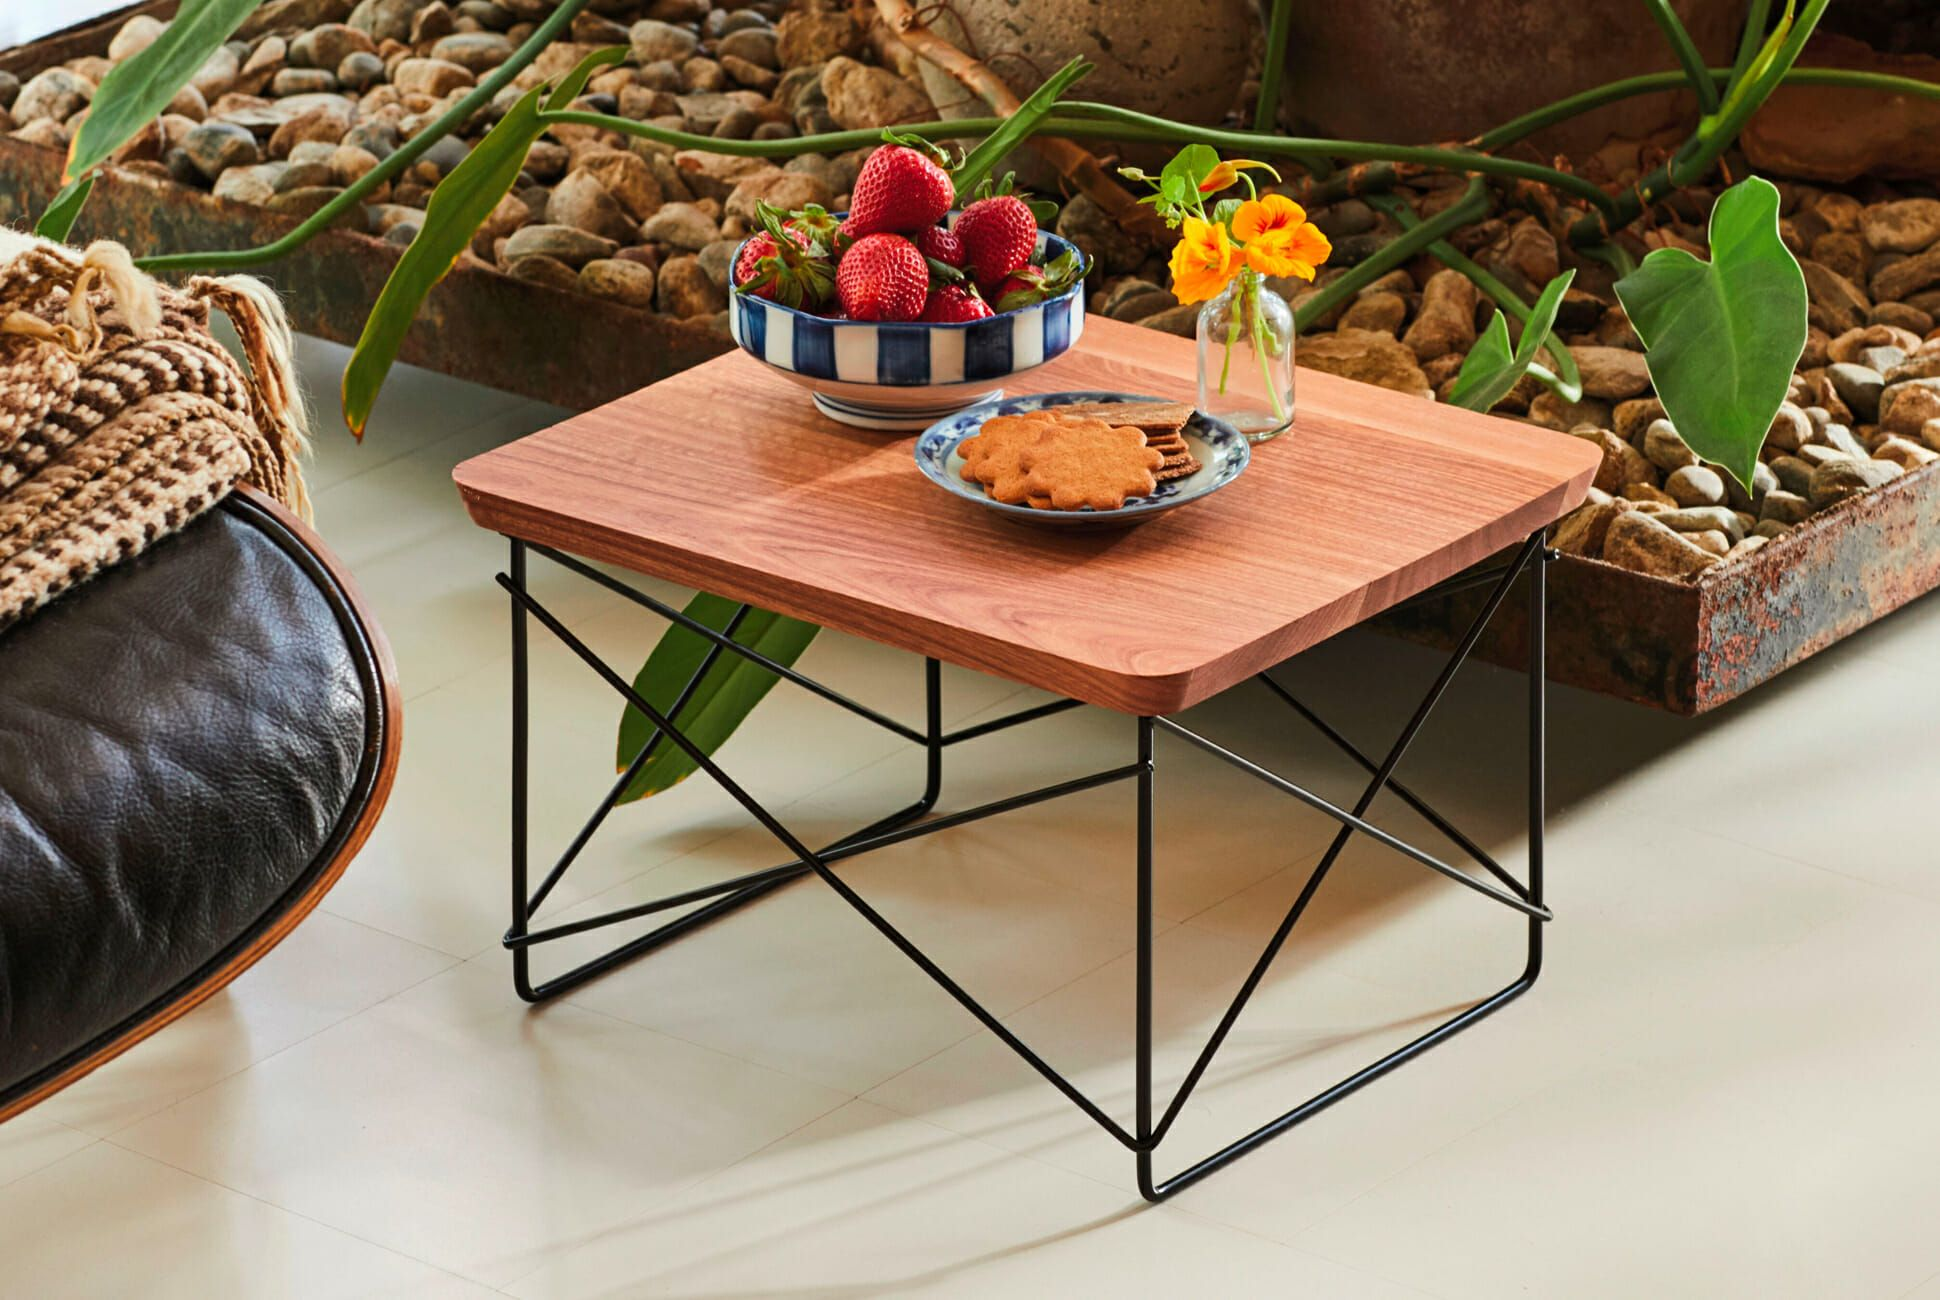 Astonishing These New Mid Century Modern Tables Are Going To Sell Out In Forskolin Free Trial Chair Design Images Forskolin Free Trialorg